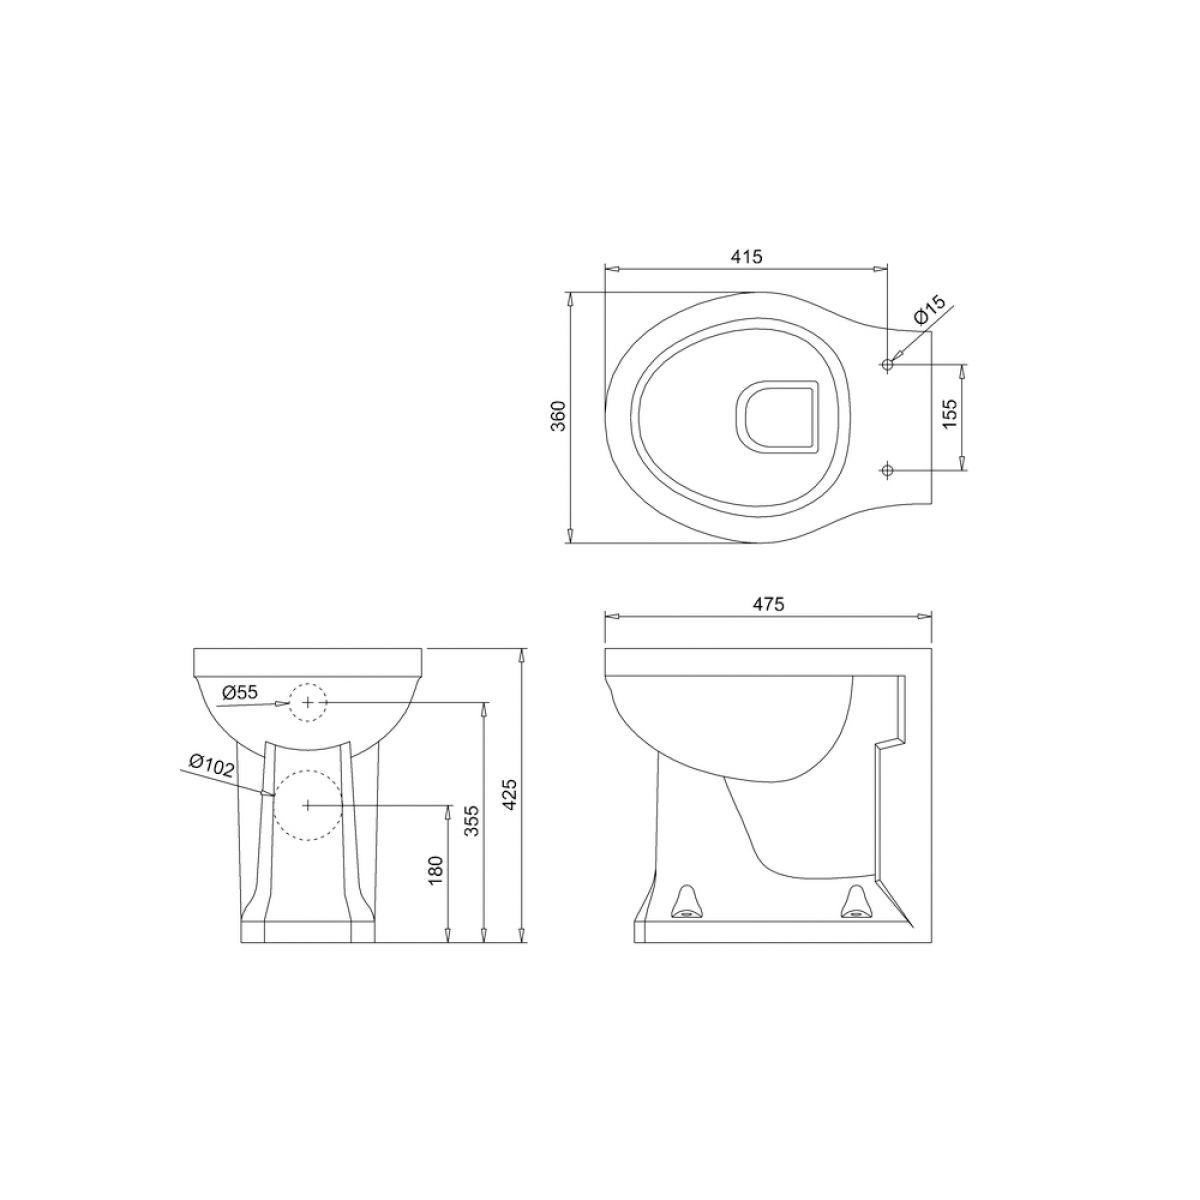 Burlington Jet Back To Wall Toilet Dimensions